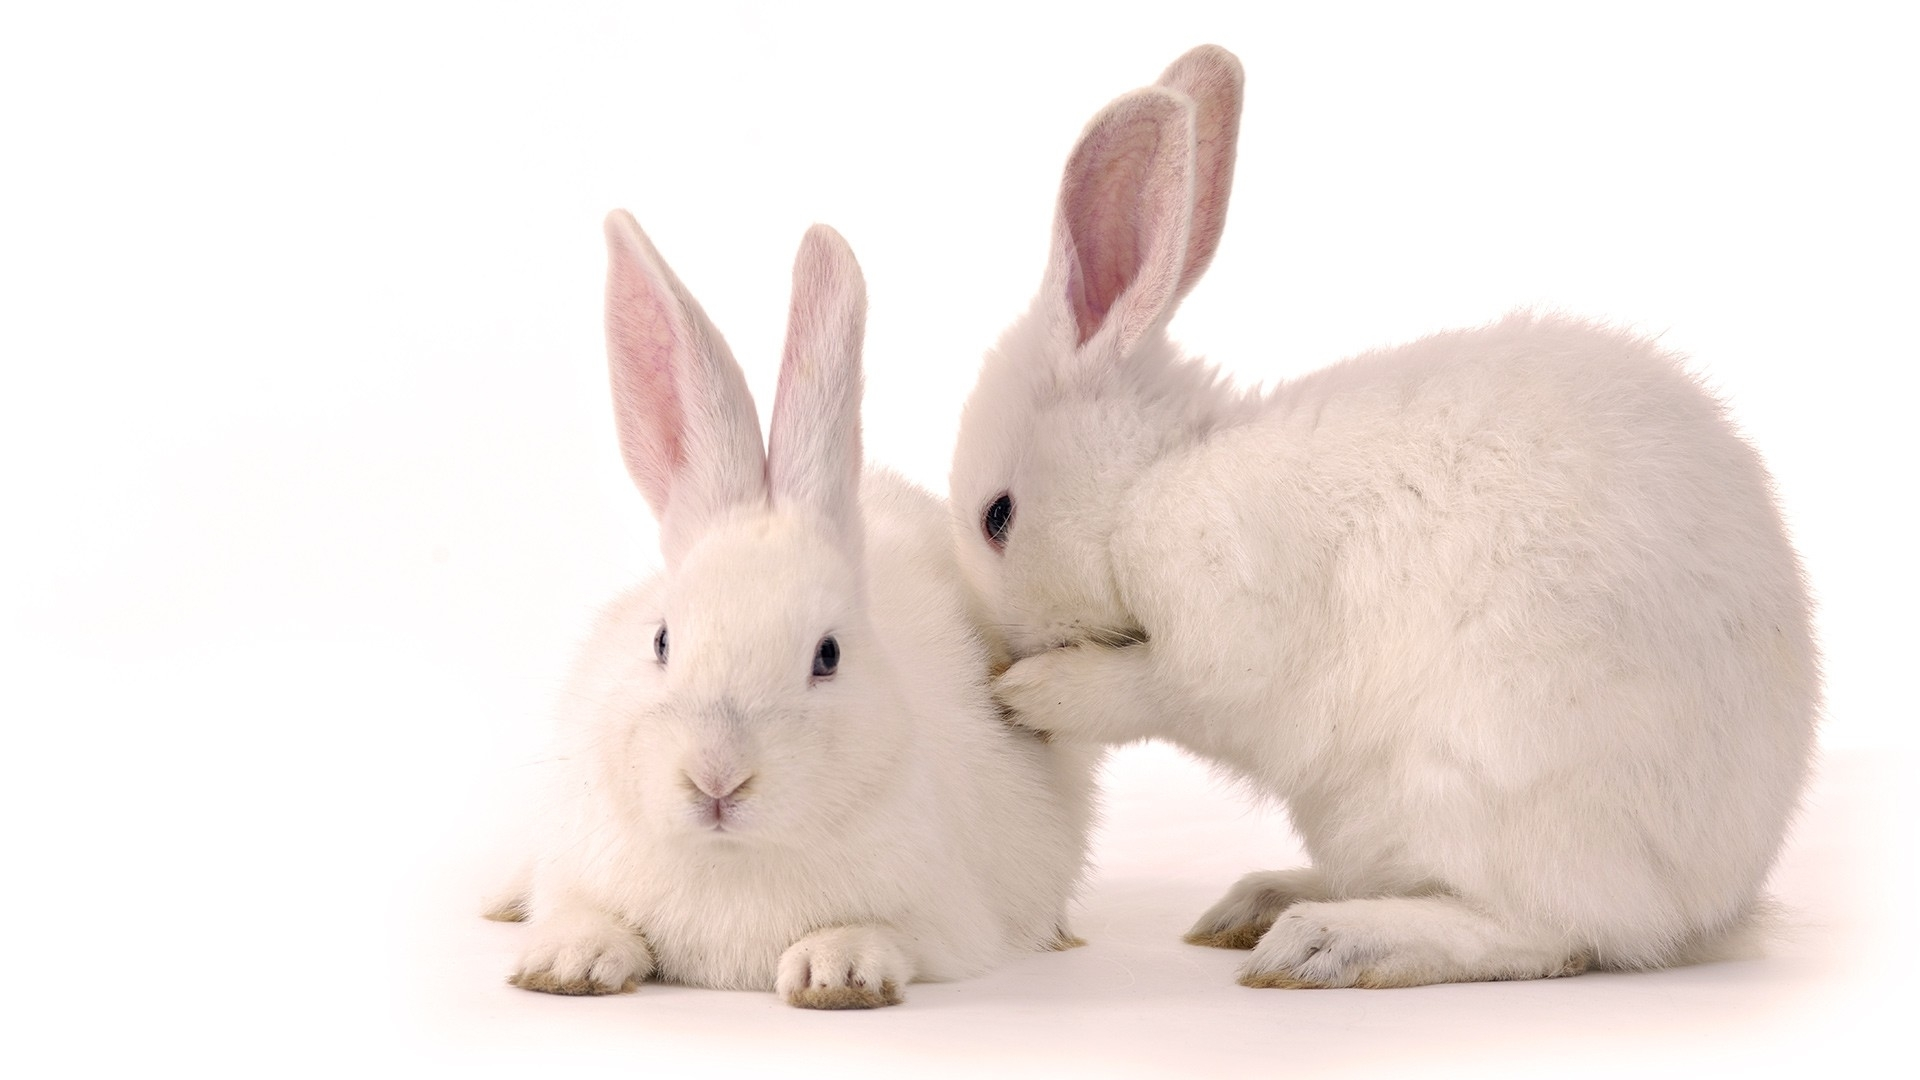 28589 download wallpaper Animals, Rabbits screensavers and pictures for free